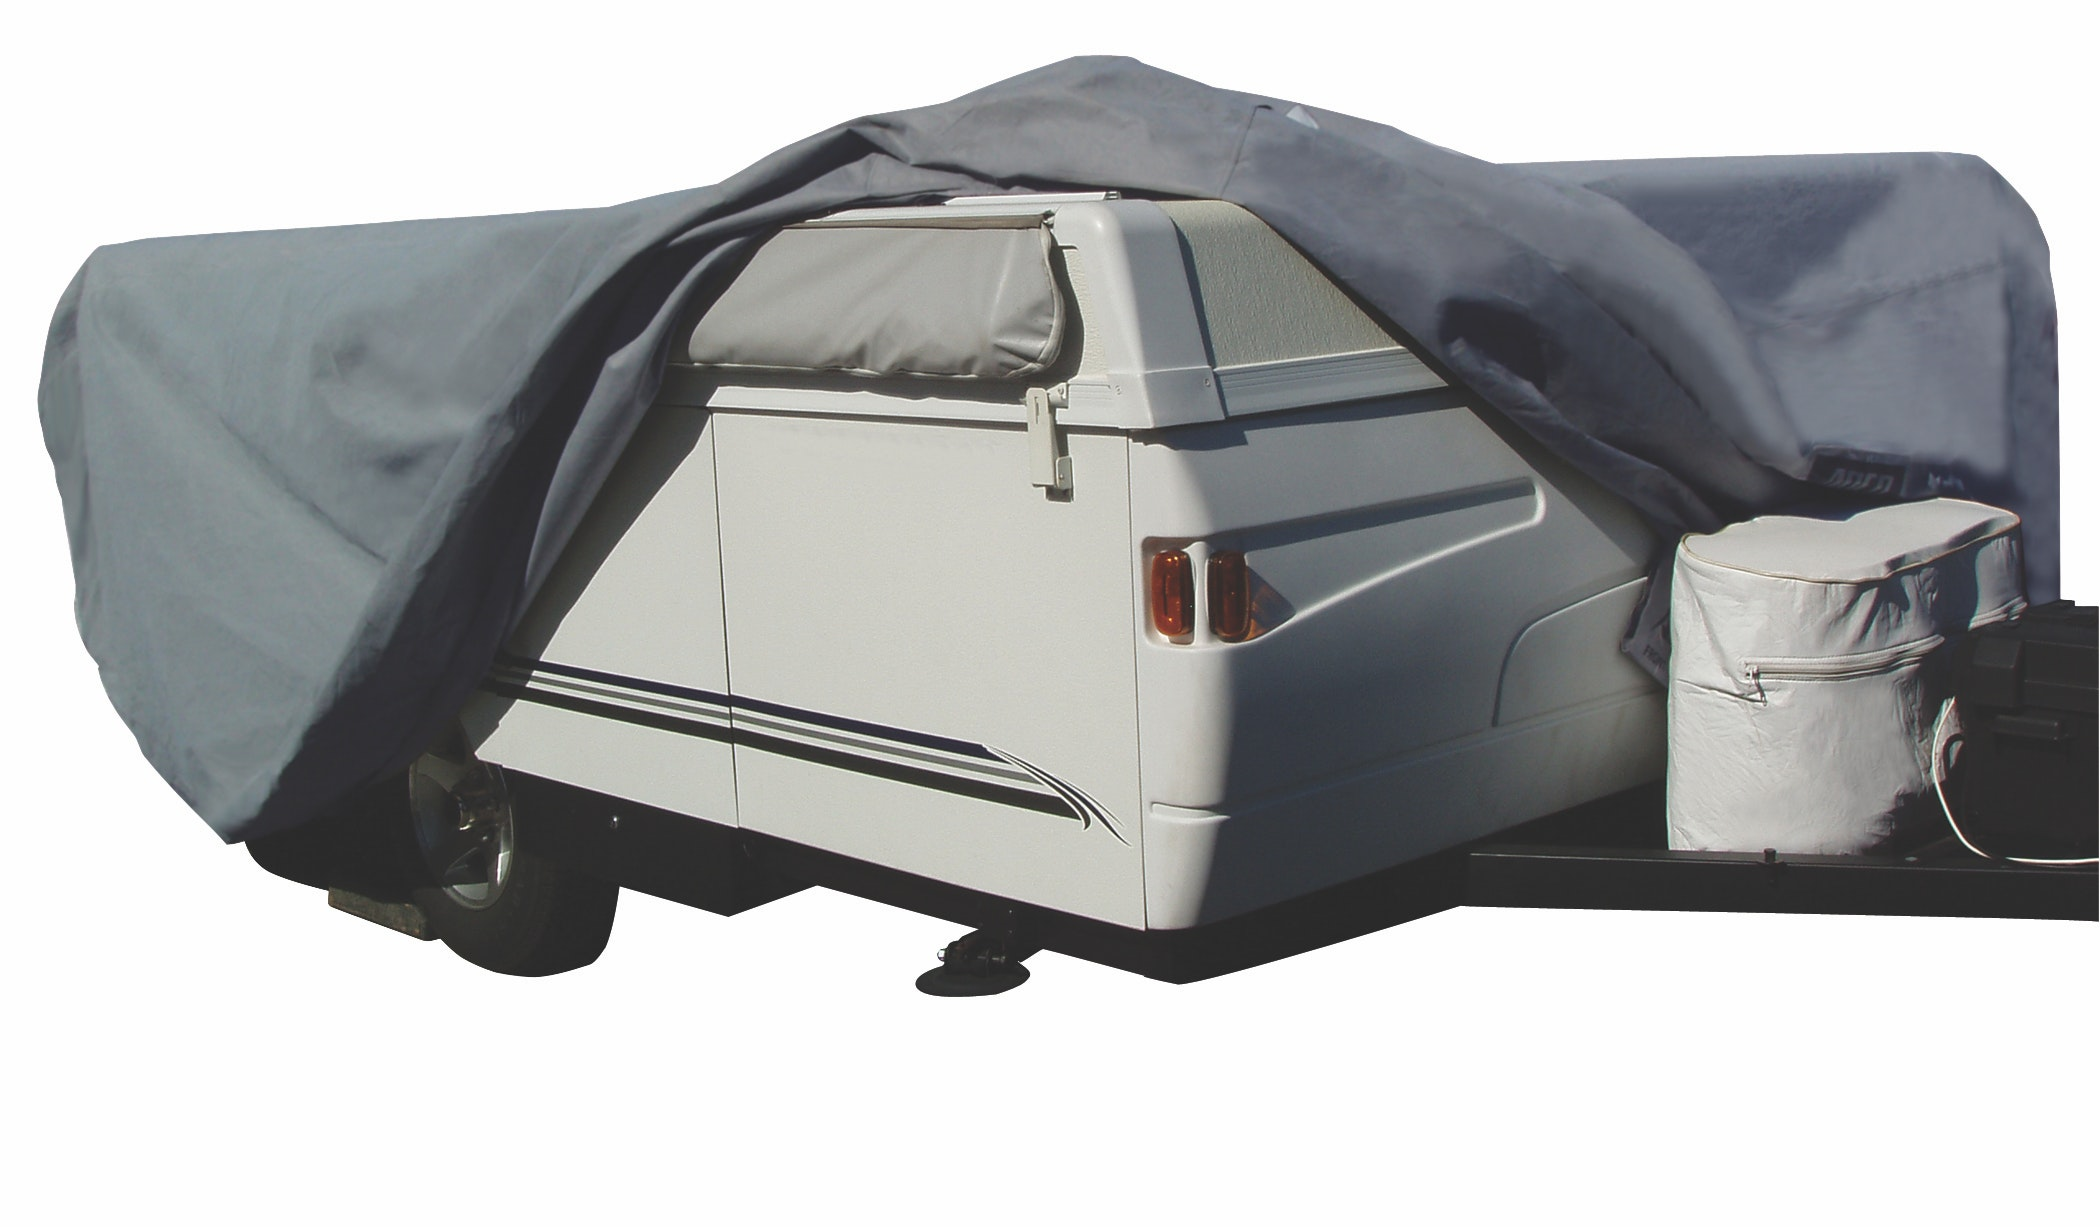 Product Image for ADCO ADCO AquaShed Up to 8' Folding Trailer / Pop Up Camper RV Cover Rv